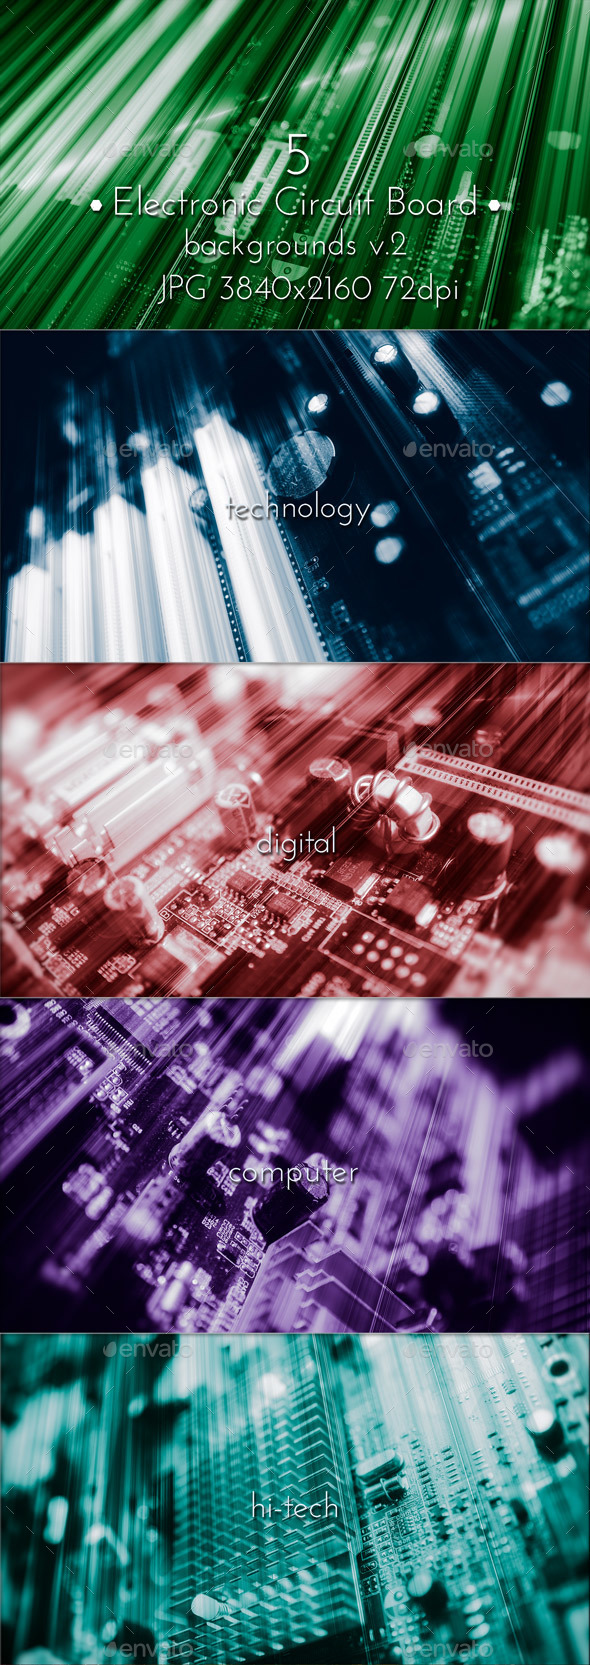 Computer Electronic Circuit Board - Tech / Futuristic Backgrounds